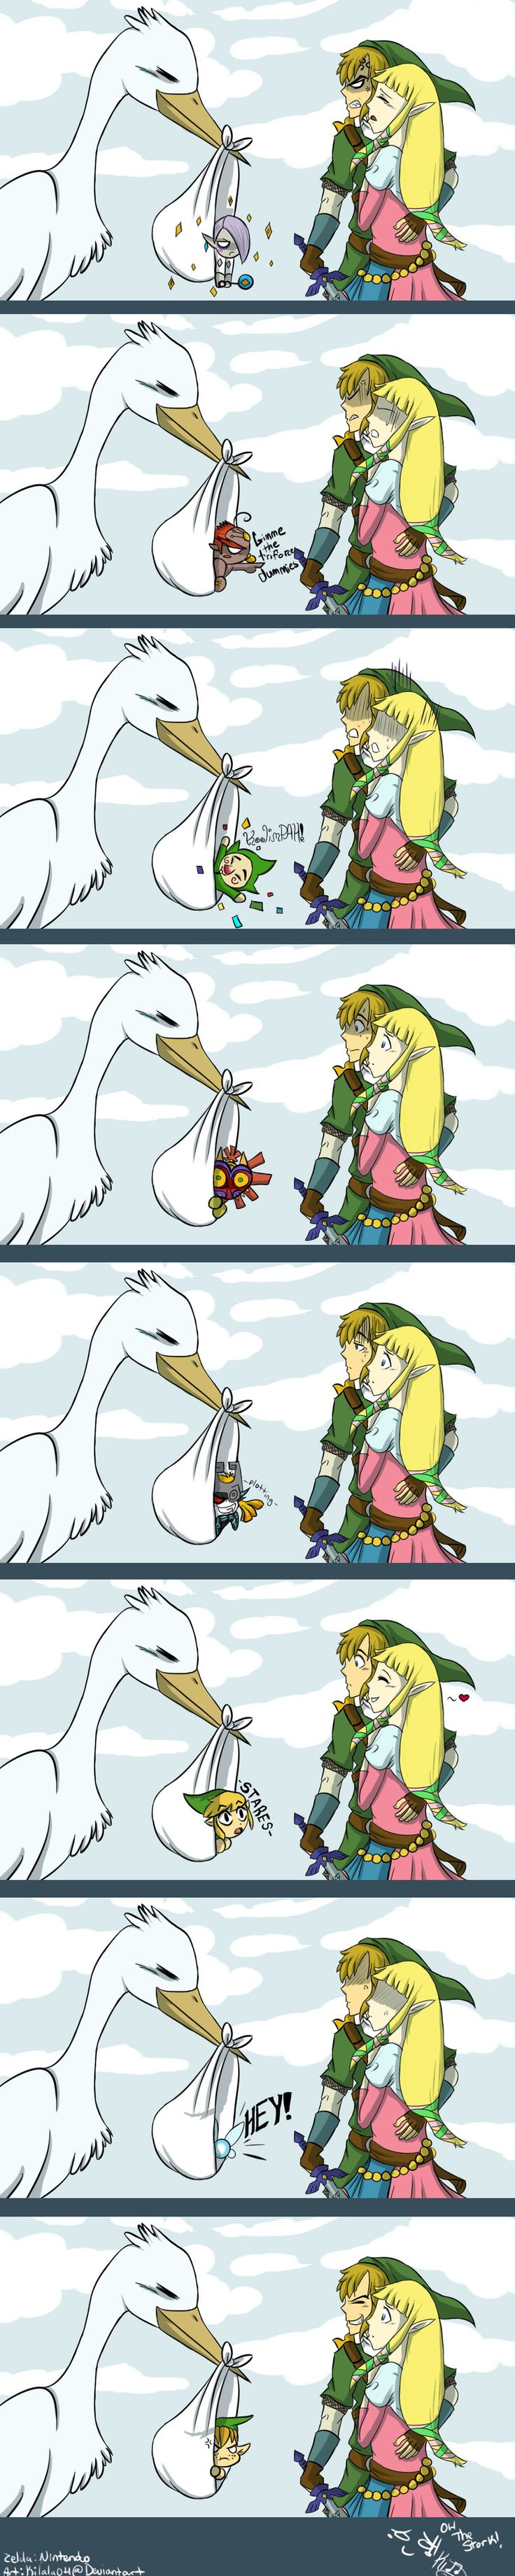 The stork, The Legend of Zelda series artwork by Kilala04.